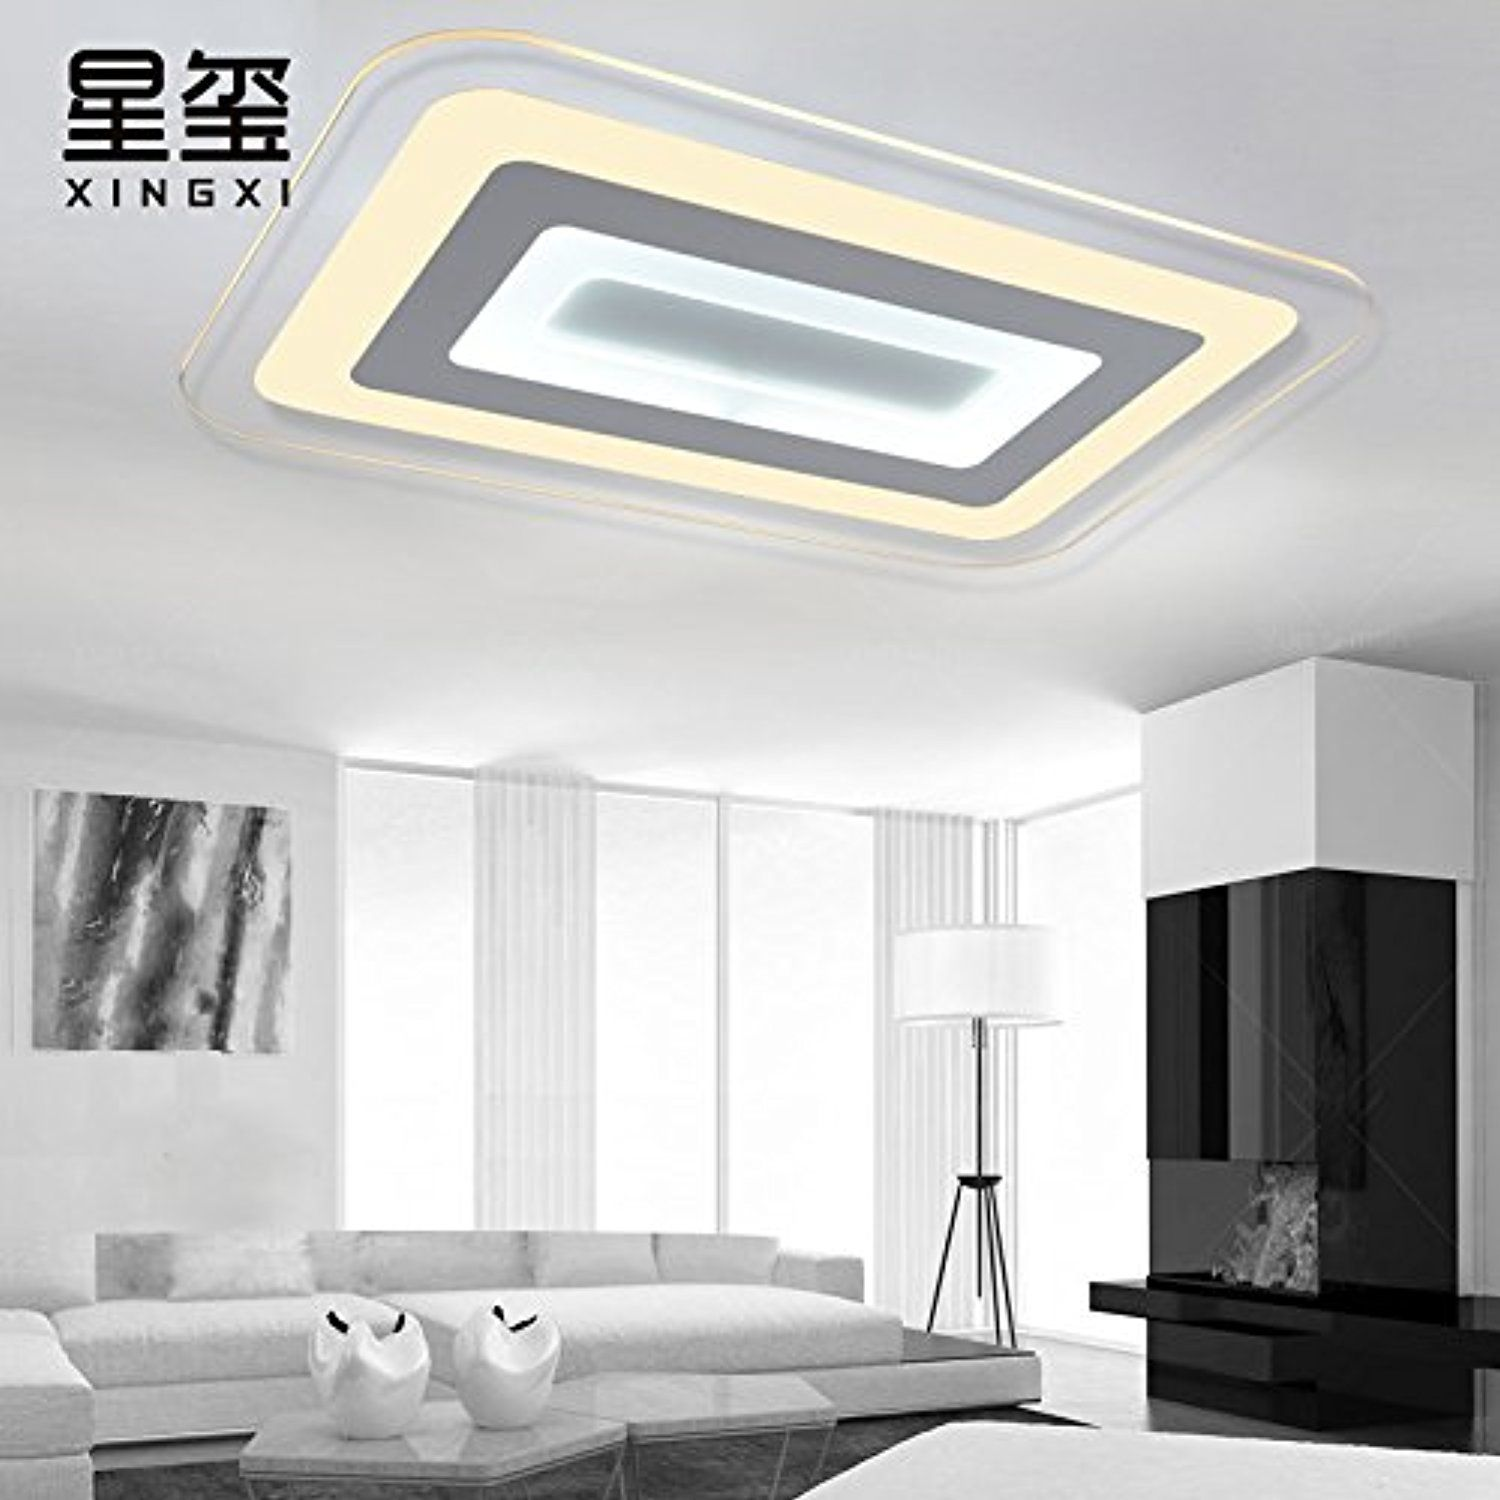 Ultra Thin Atmospheric Rectangular Living Room Ceiling Light